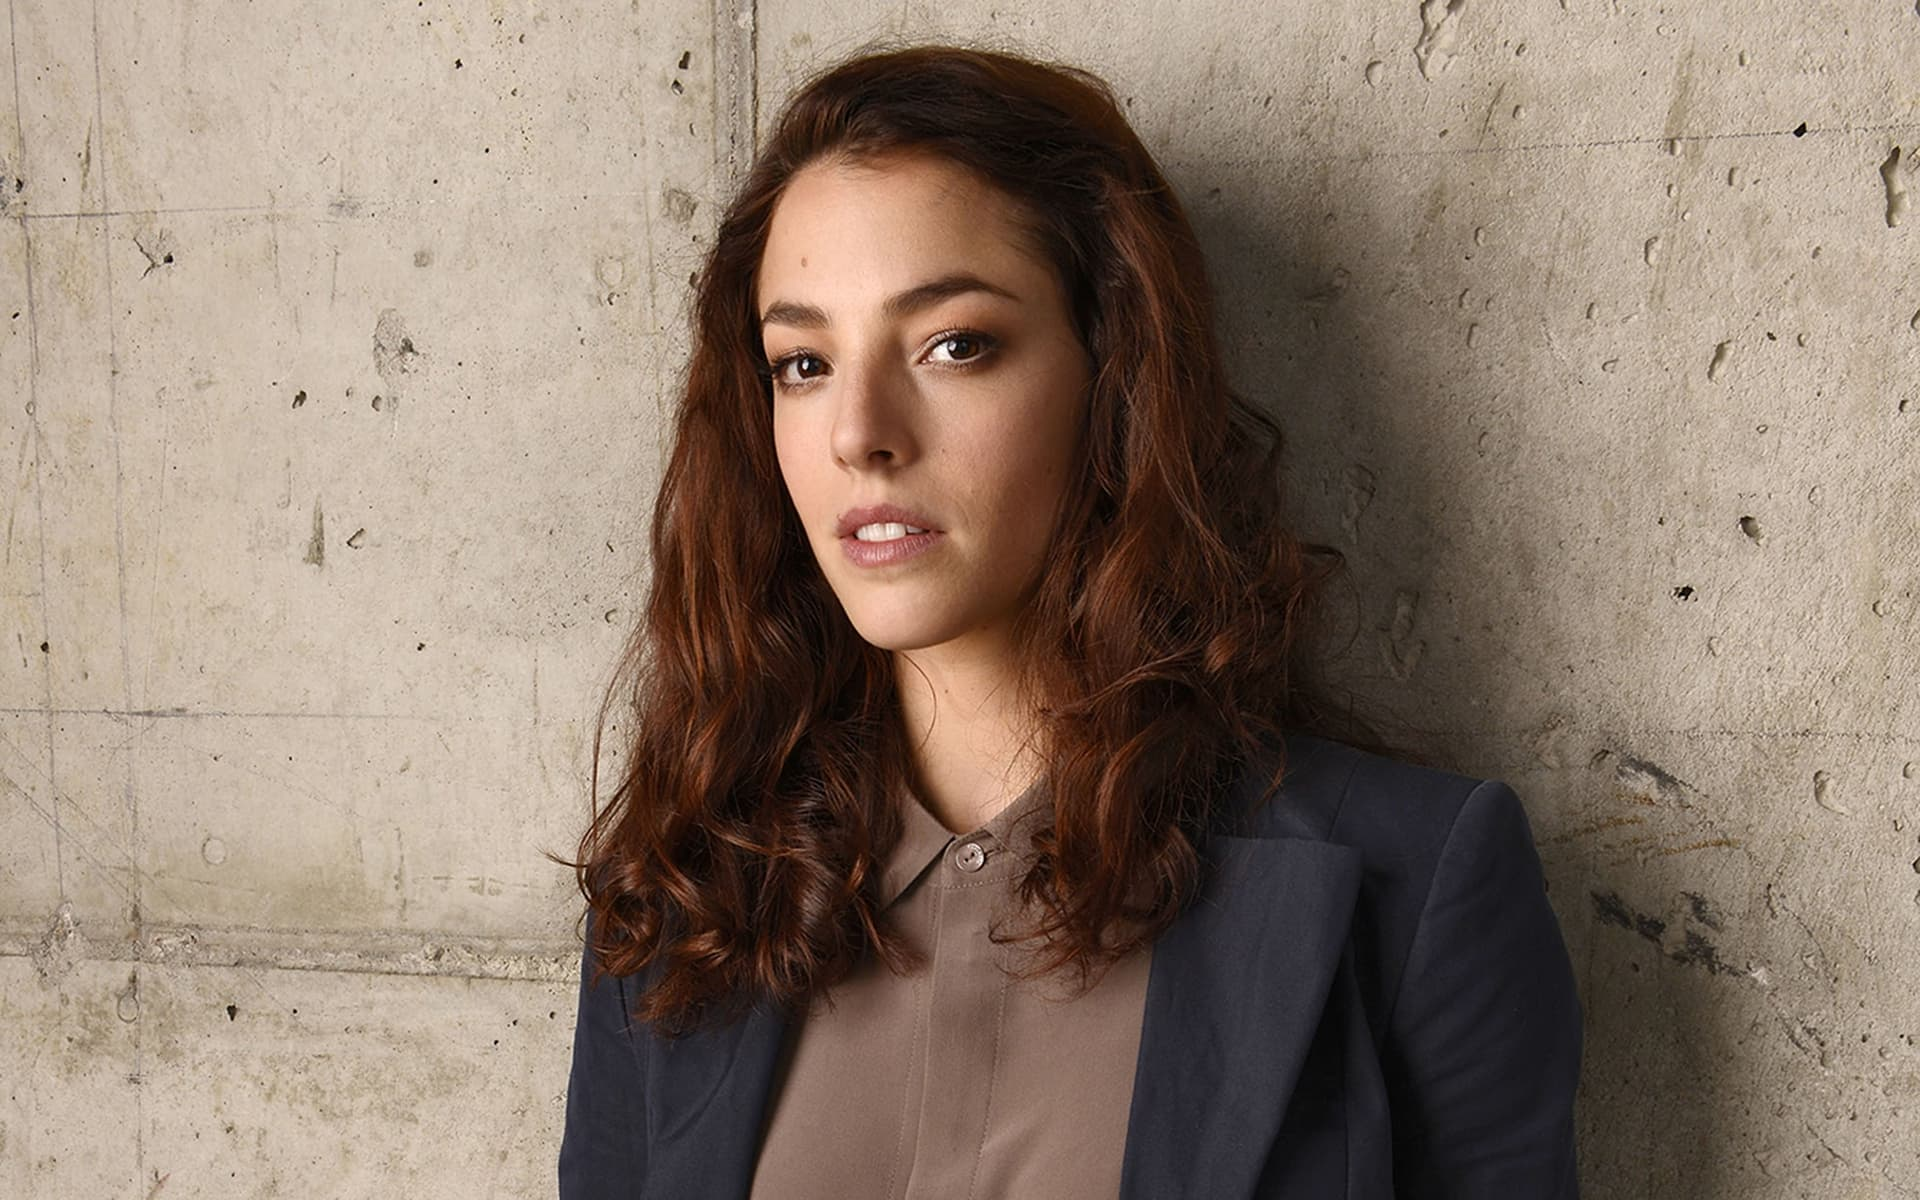 9+ Olivia Thirlby wallpapers High Quality Resolution Download